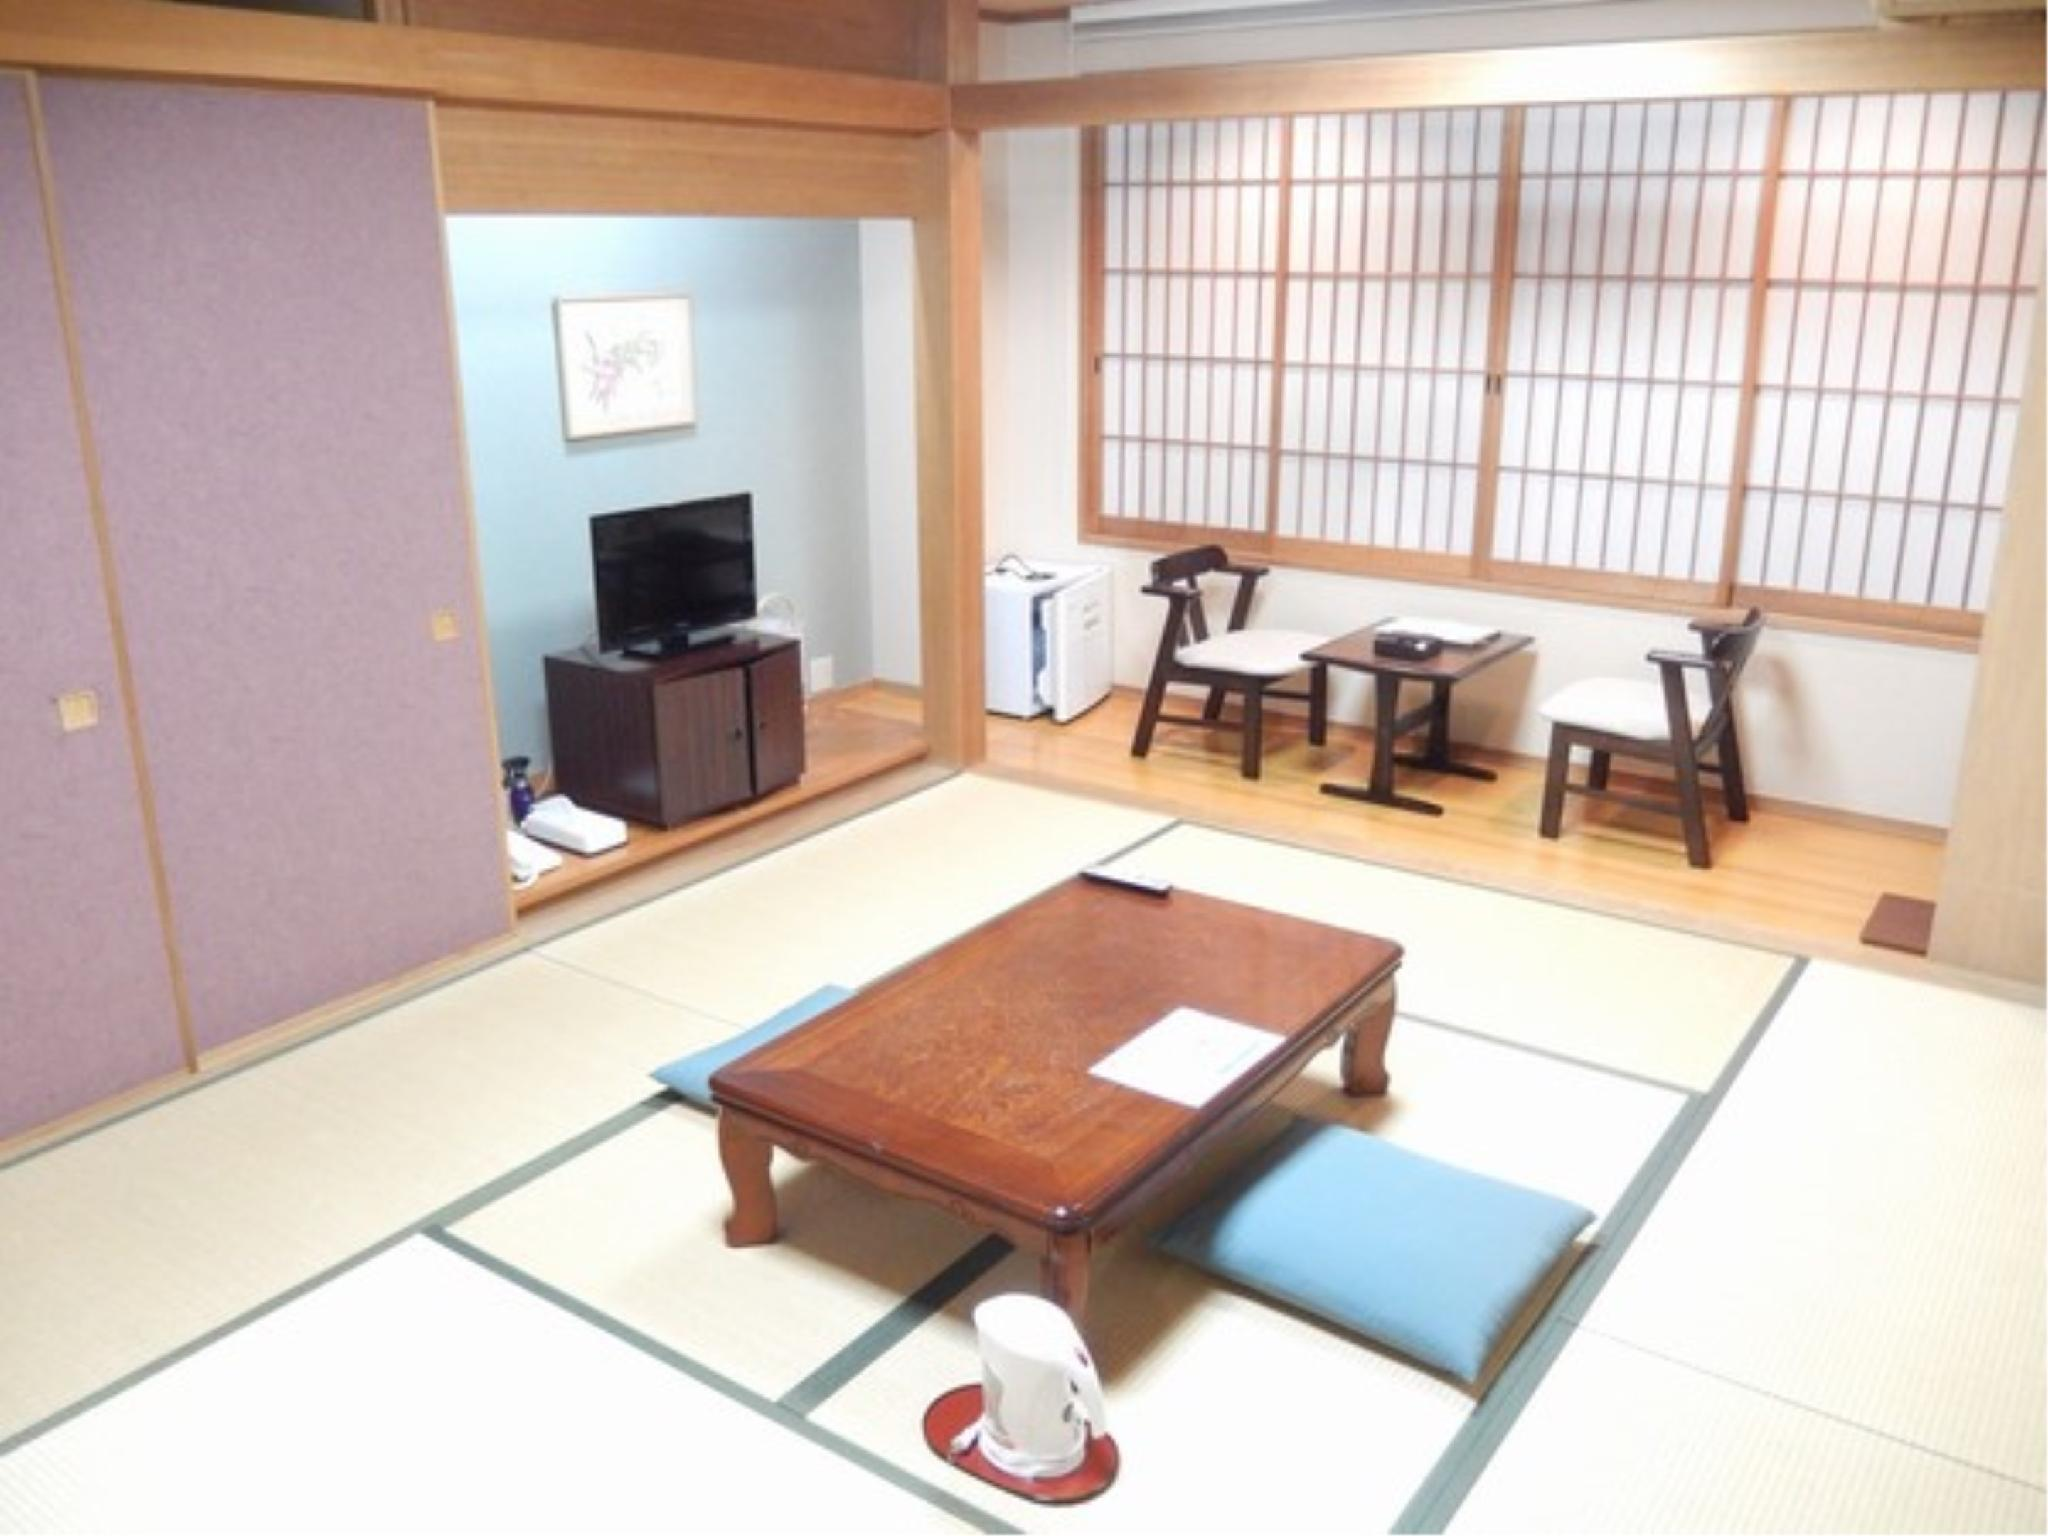 和式房(无厕所浴室) (Japanese-style Room *No bath or toilet in room)